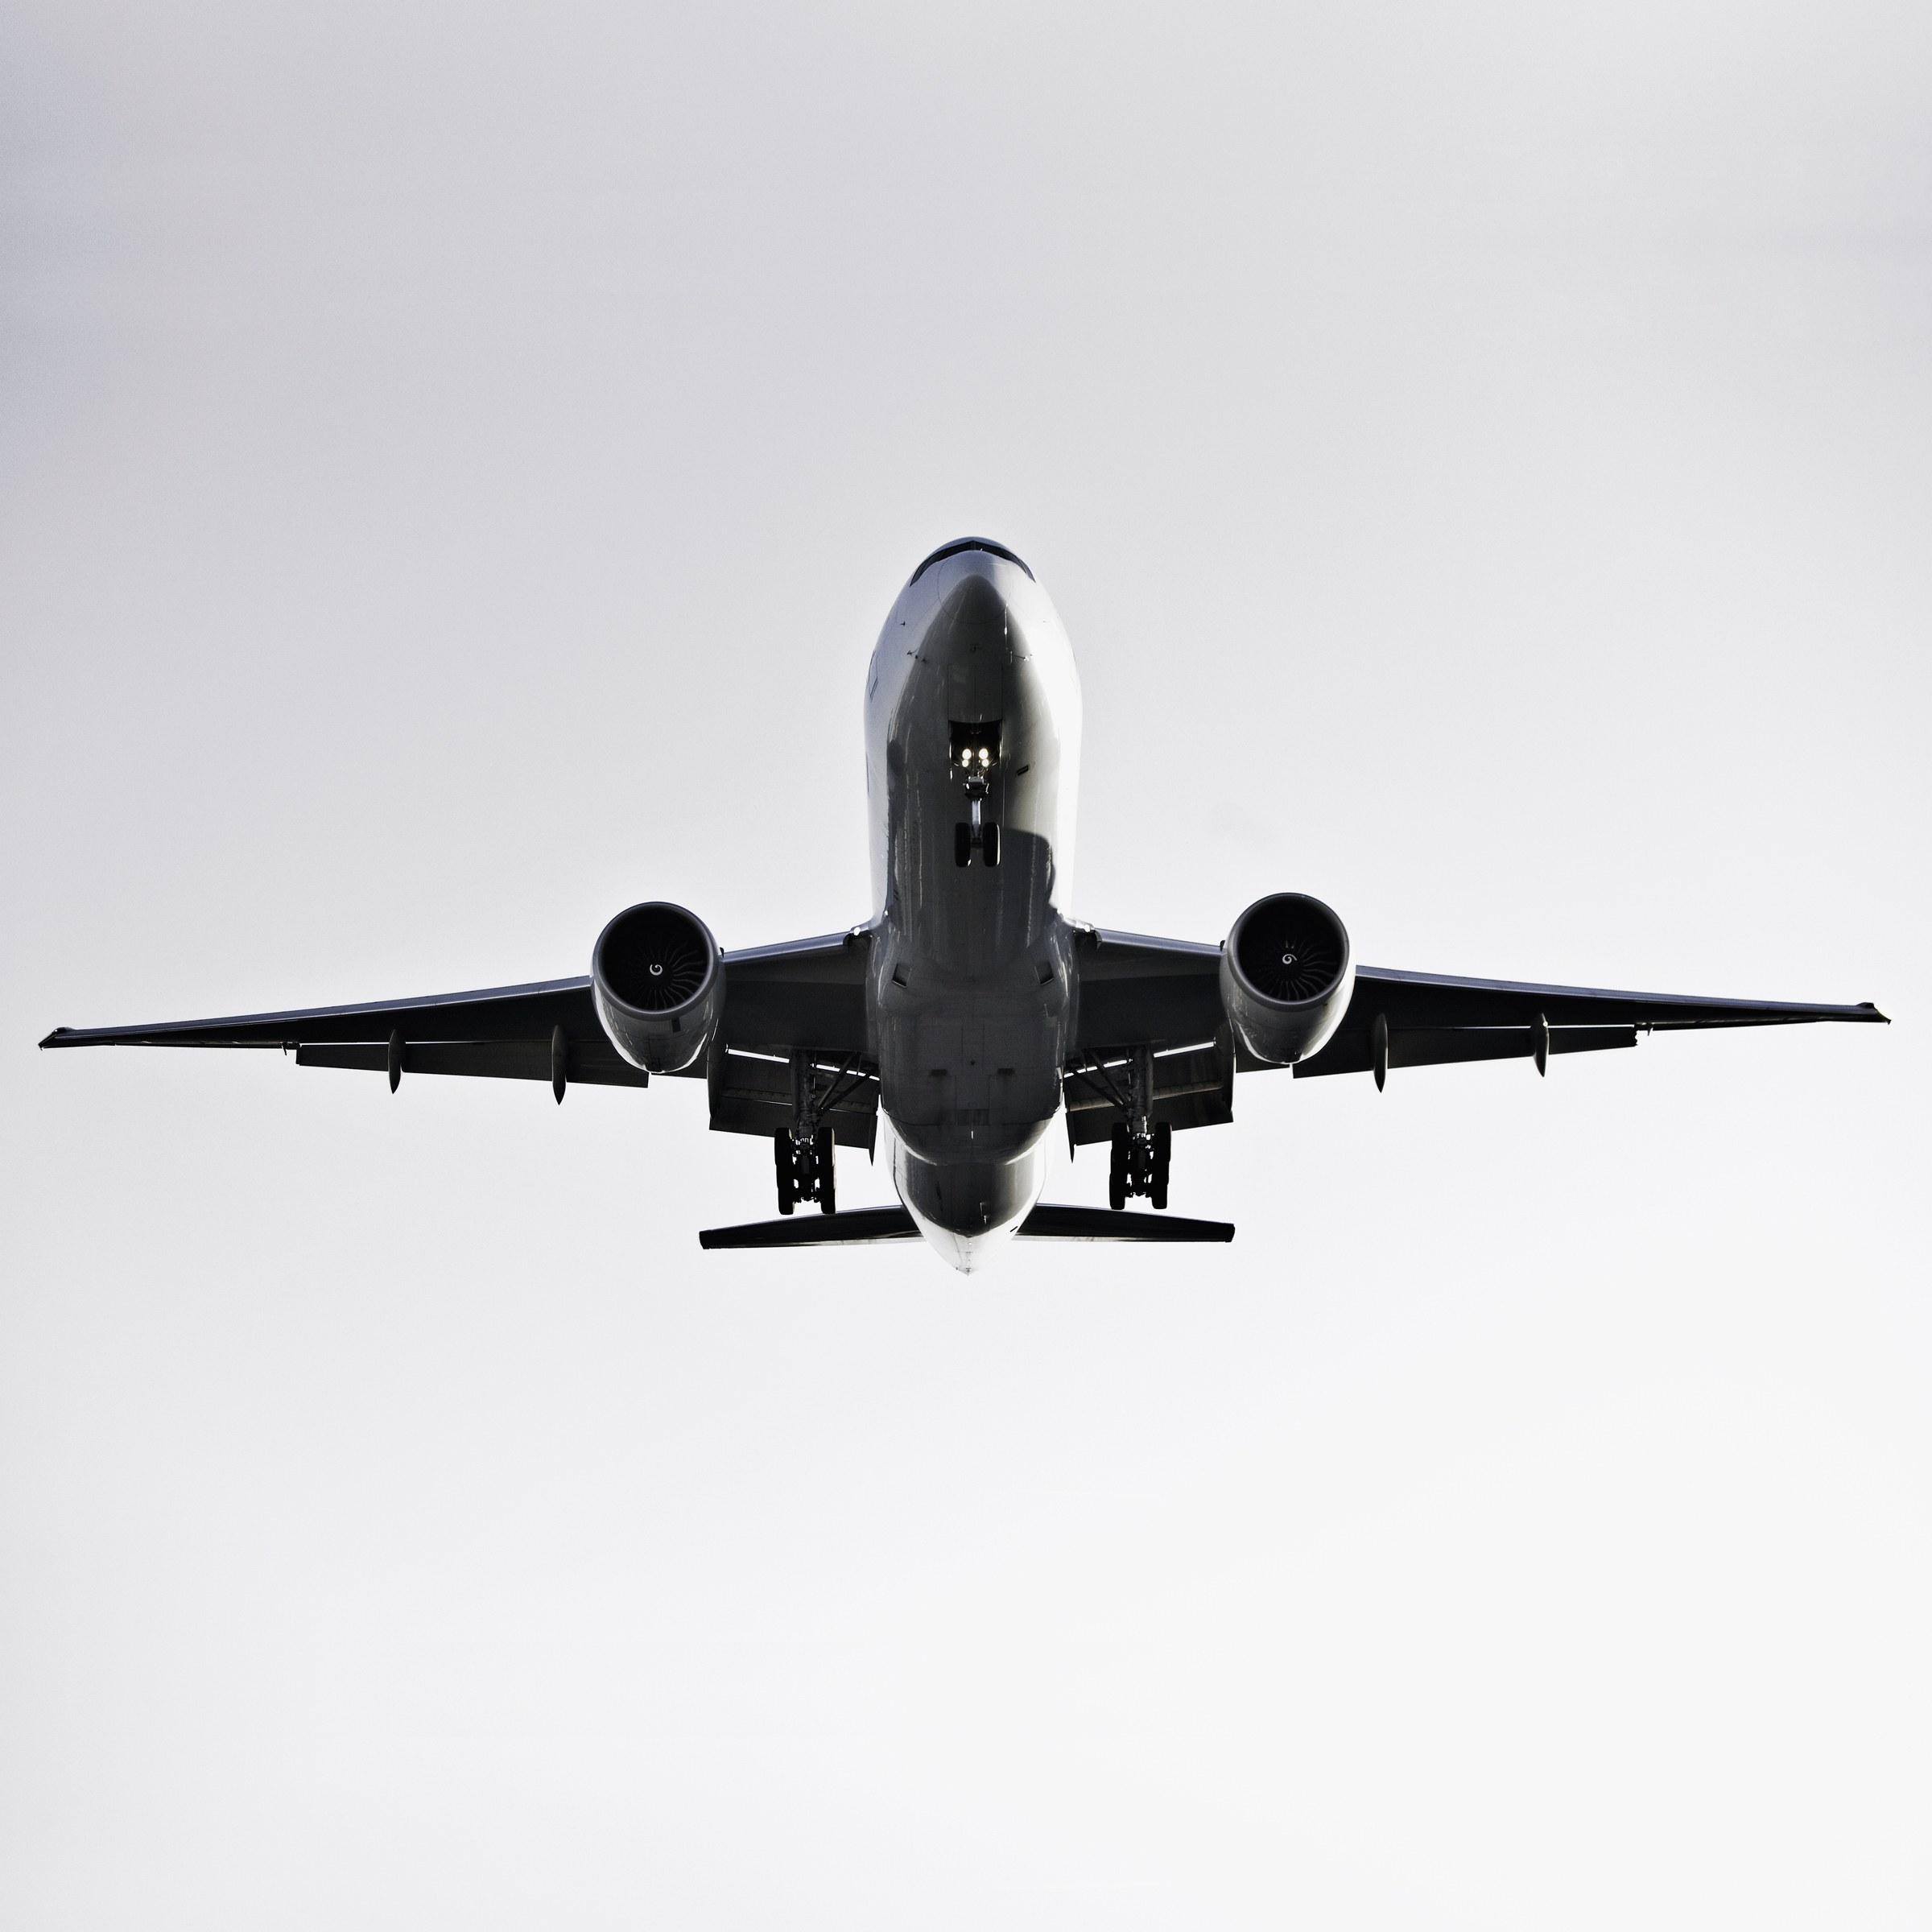 Can an Airplane Take Off on a Moving Runway? | WIRED